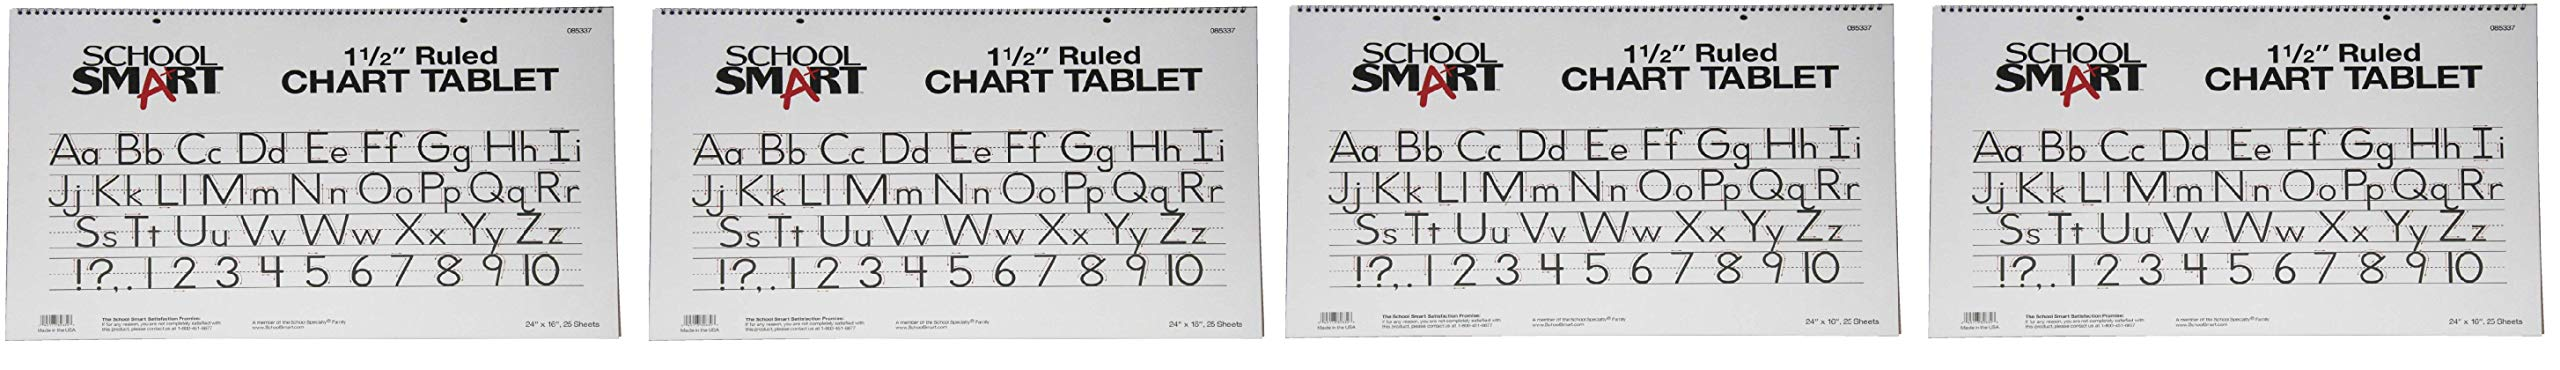 School Smart Chart Tablet, 24 x 16 Inches, 1-1/2 Inch Skip Line, 25 Sheets (Fоur Расk) by School Smart